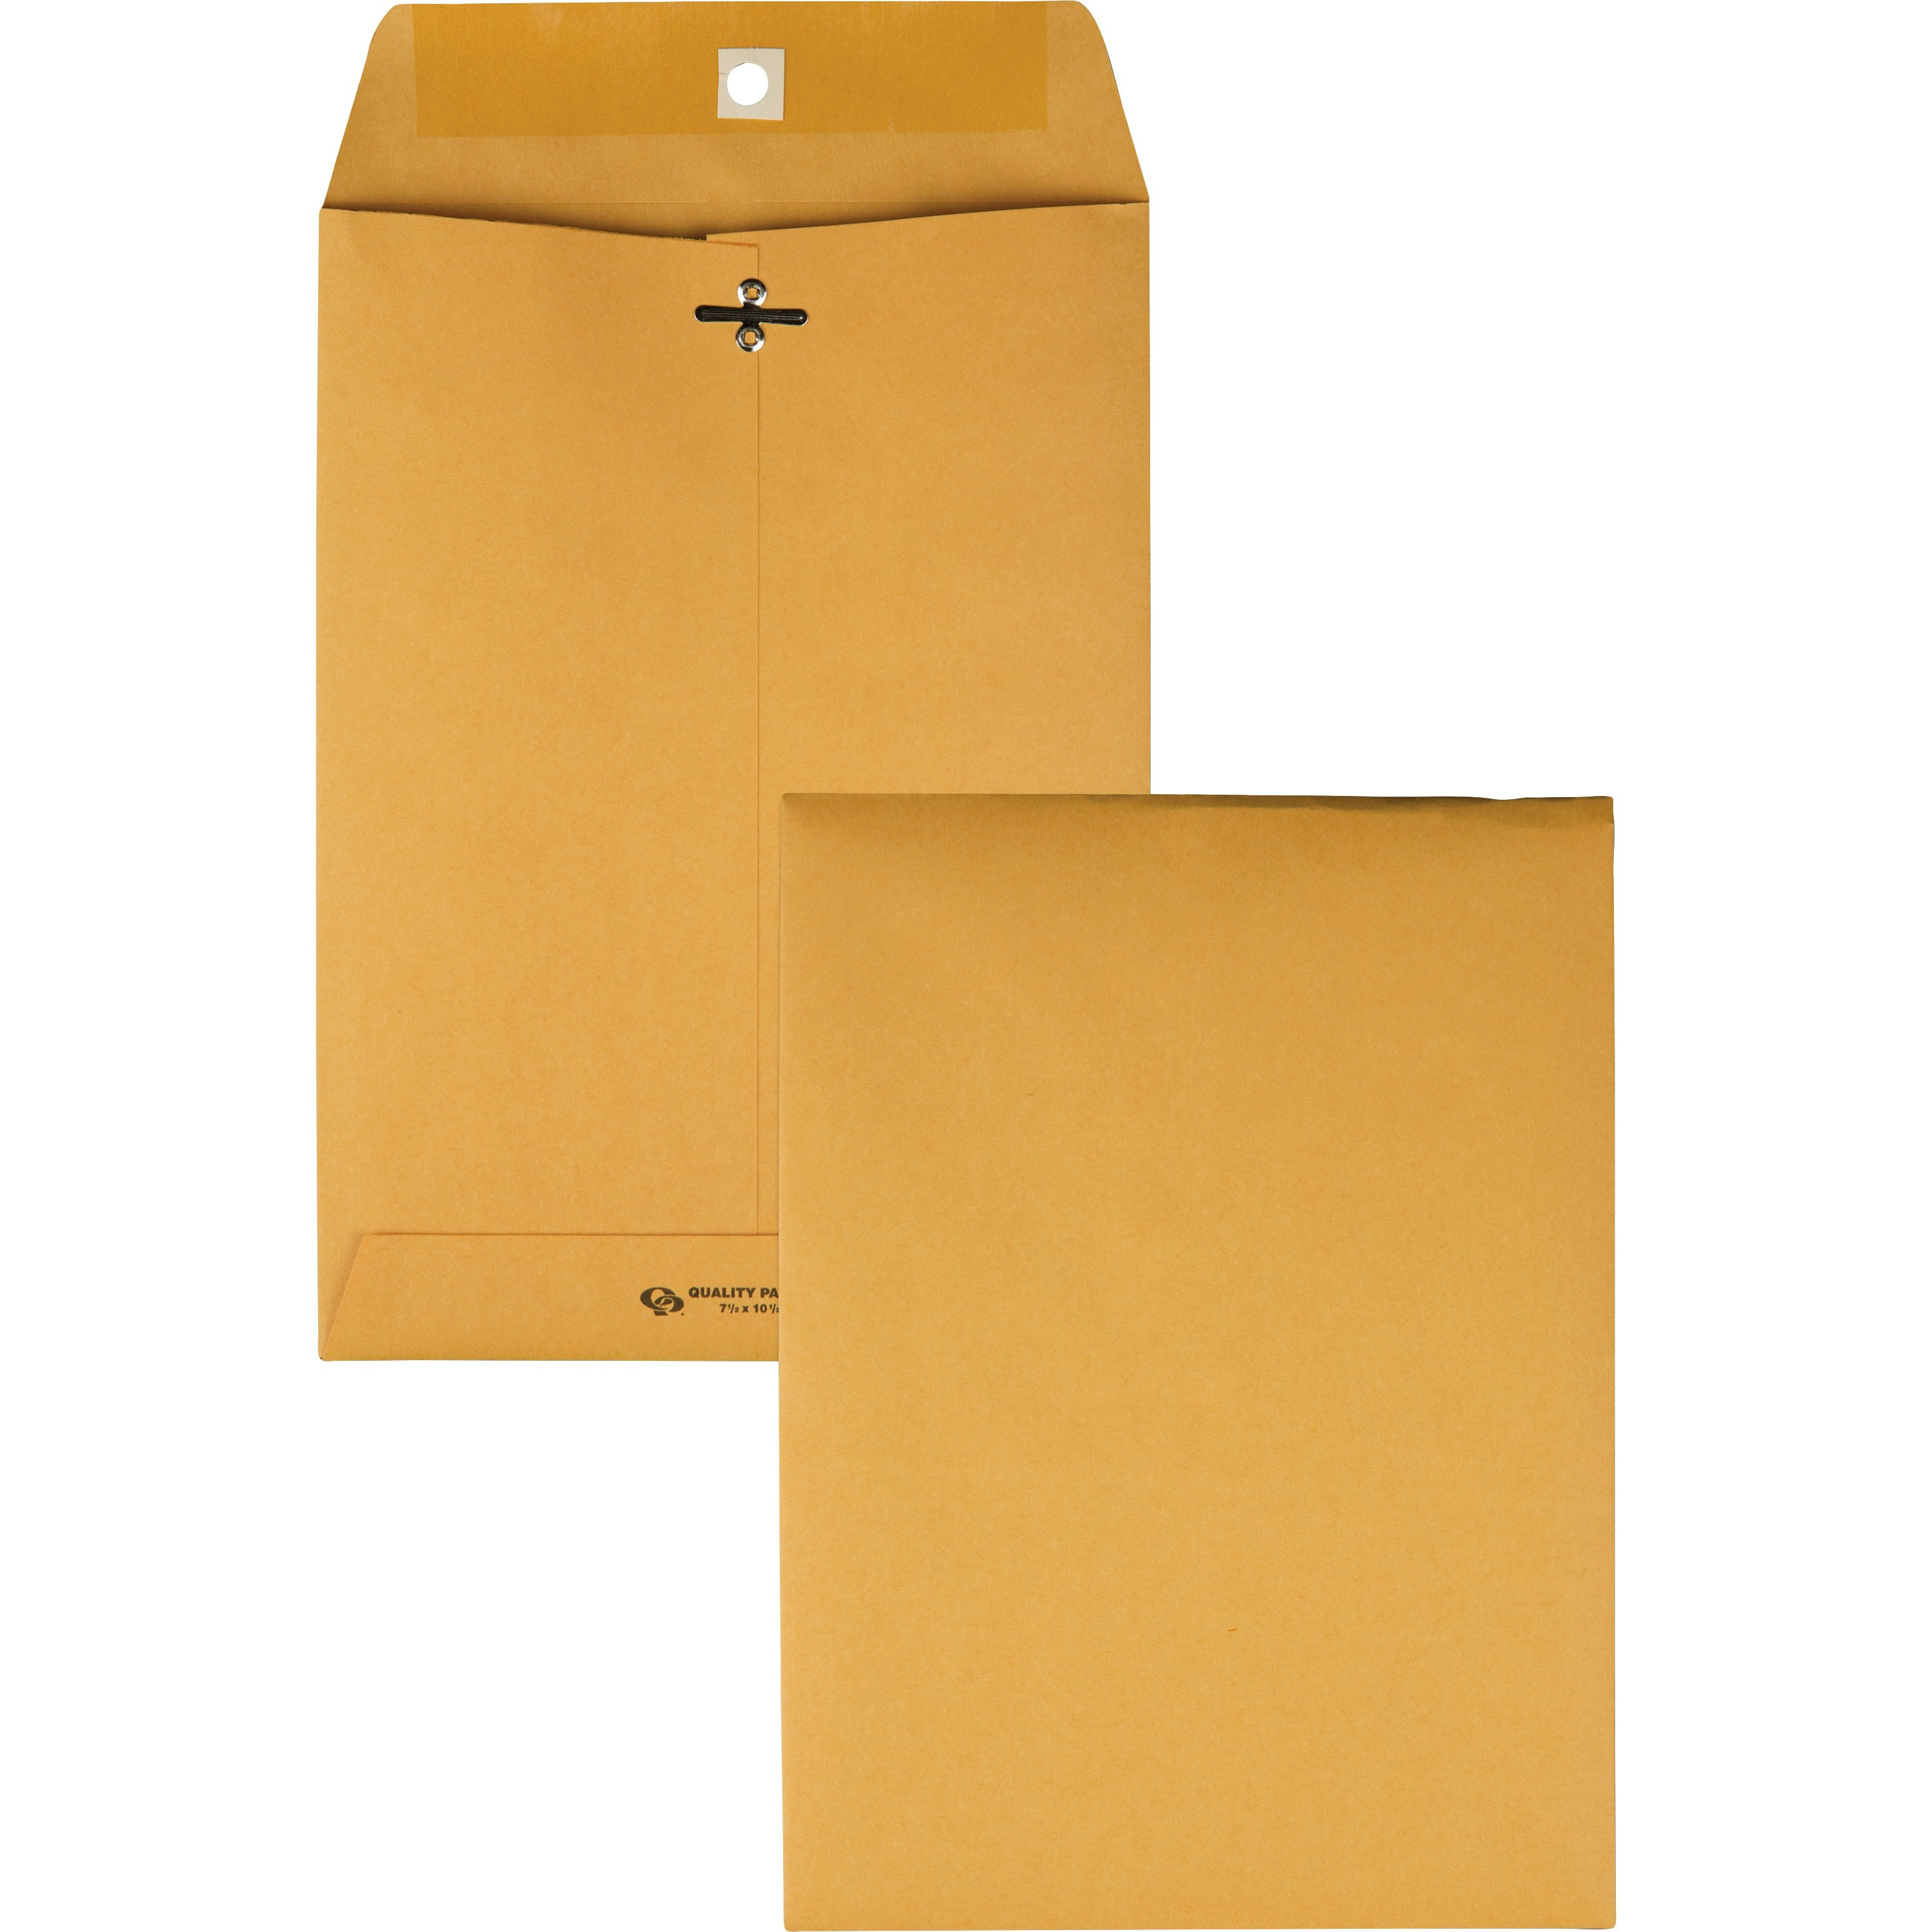 Clasp Envelope, 7 1/2 x 10 1/2, 28lb, Brown Kraft, 100/Box